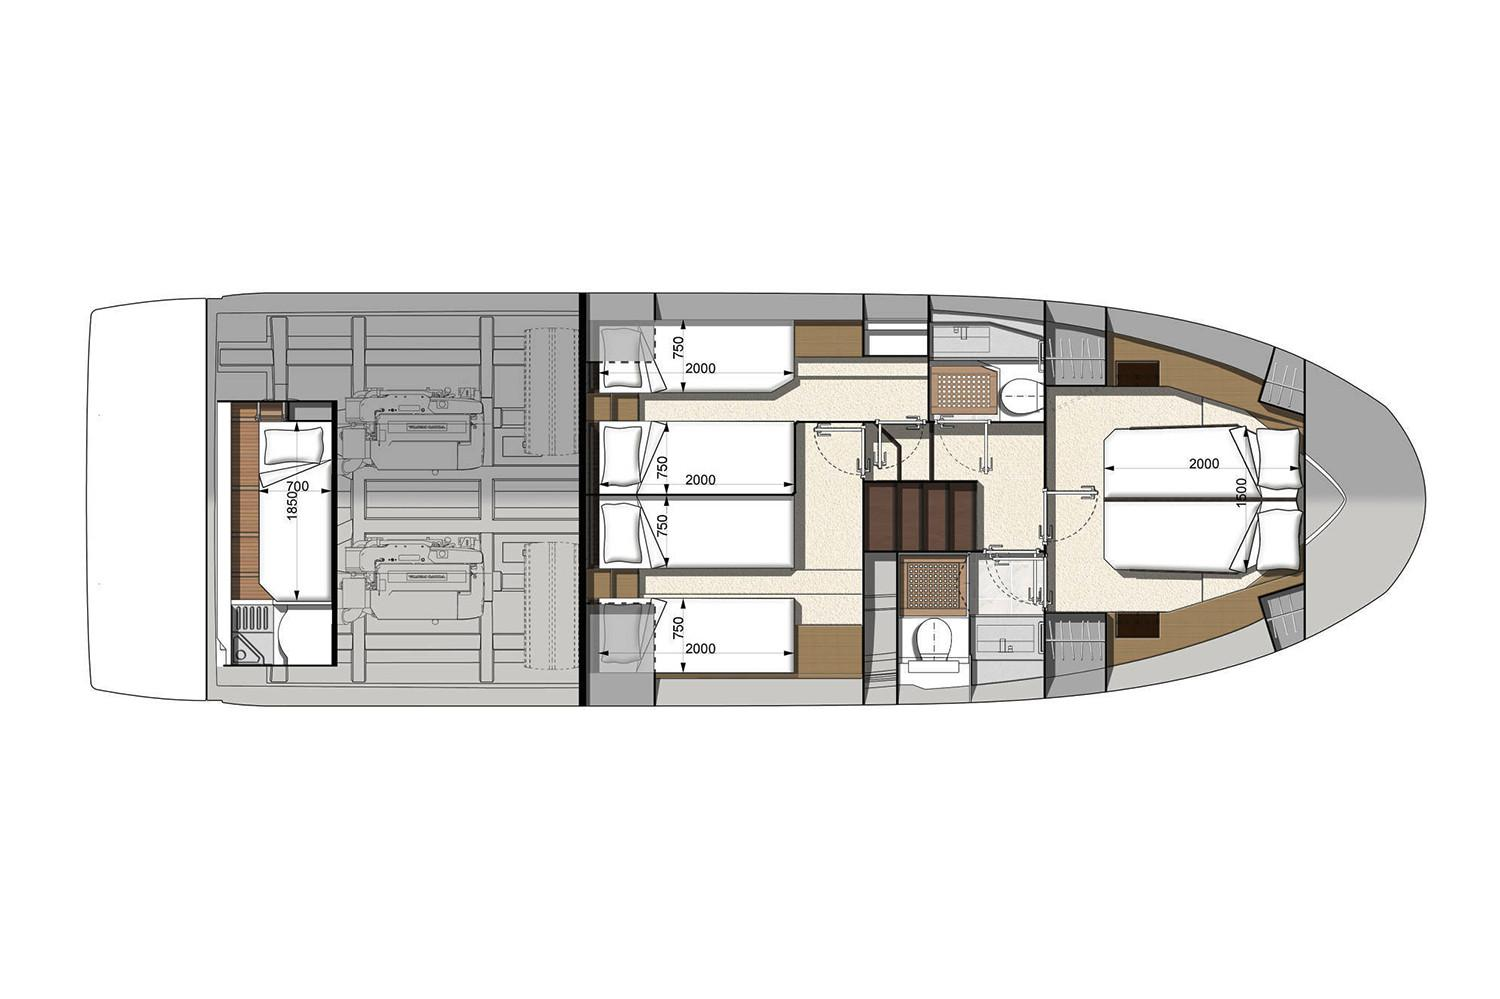 2022 Prestige 460 #76238 inventory image at Sun Country Coastal in San Diego